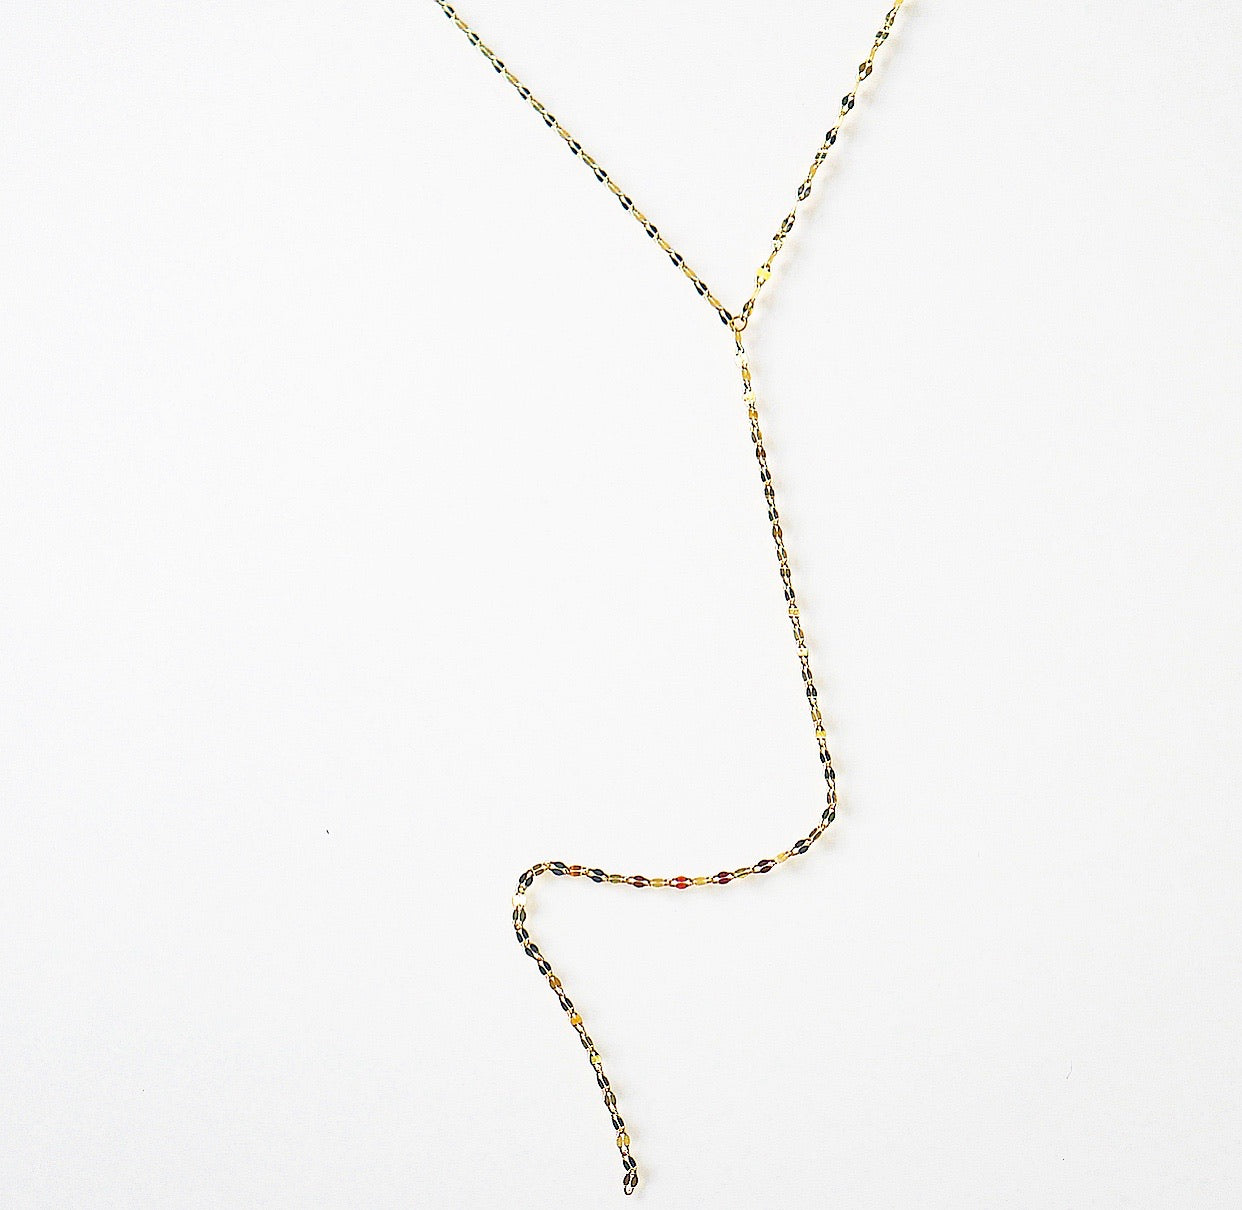 Daily Lariat Long Necklace